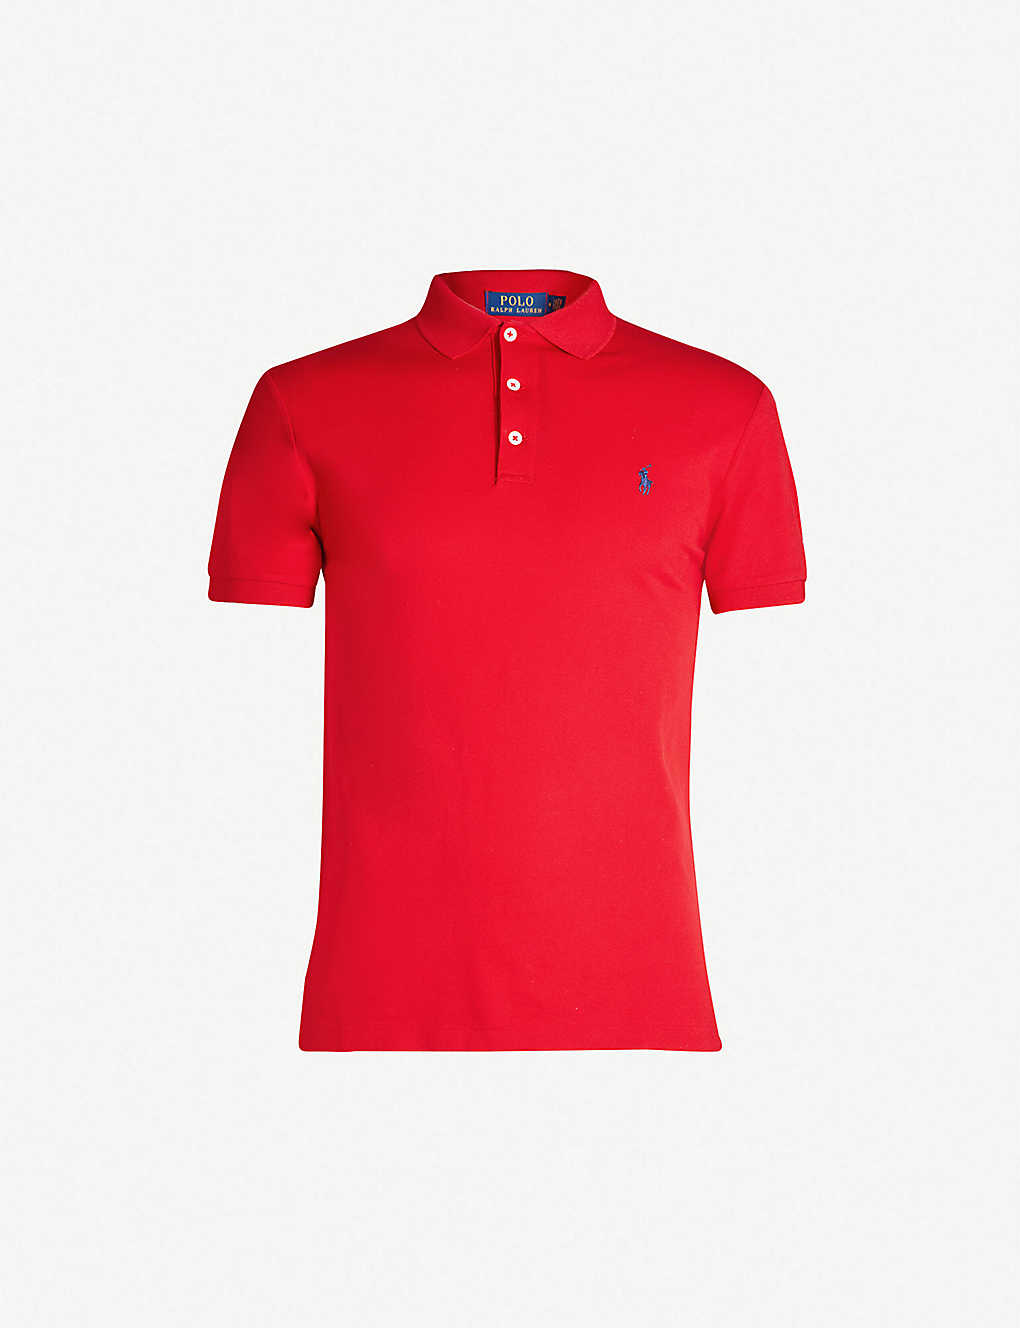 466ac7f1 POLO RALPH LAUREN - Logo-embroidered cotton-piqué polo shirt ...